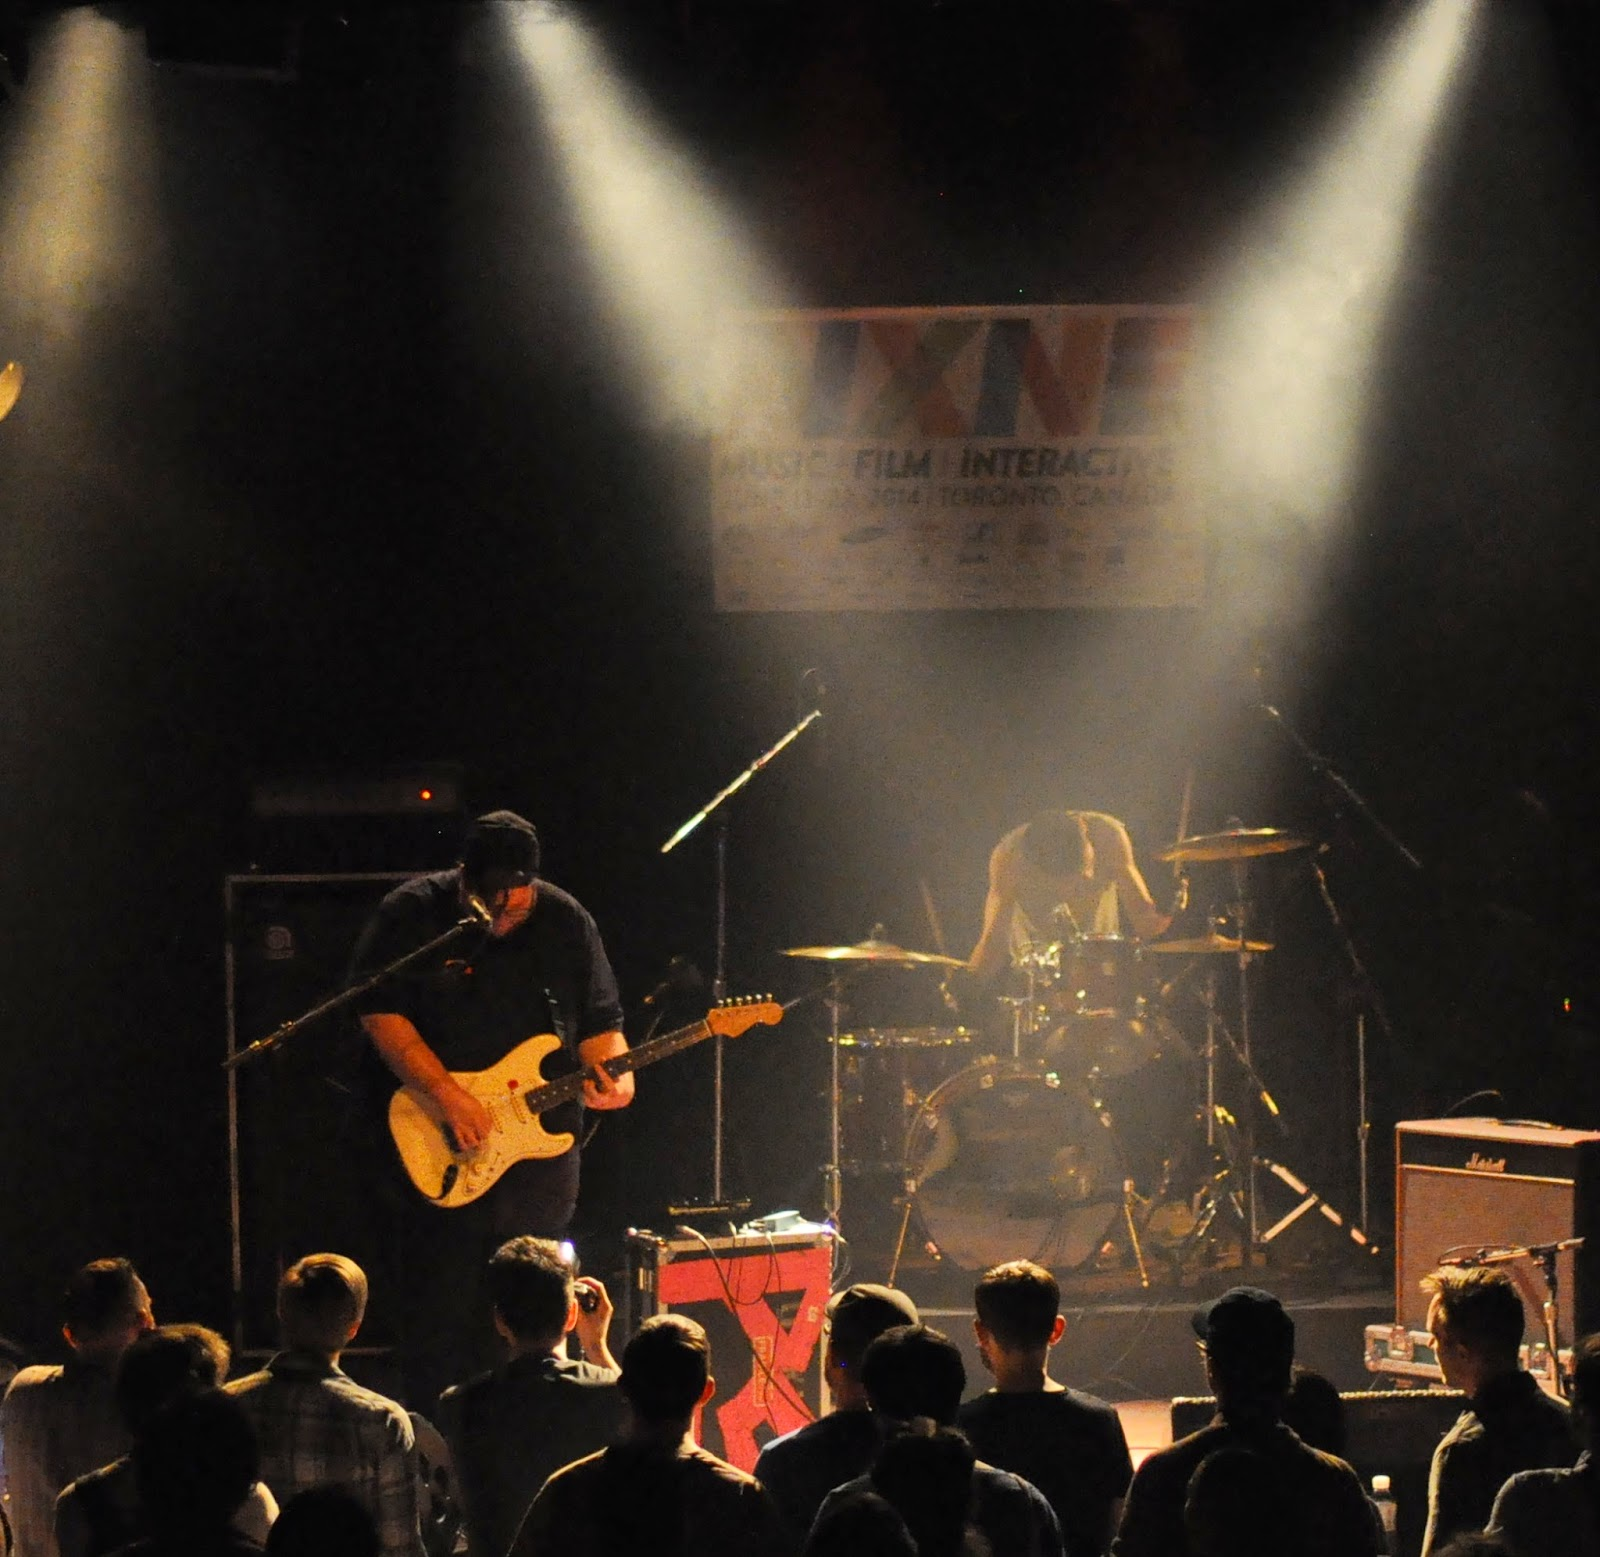 The Mod Club Theatre hosted PS I Love You for NXNE 2014.